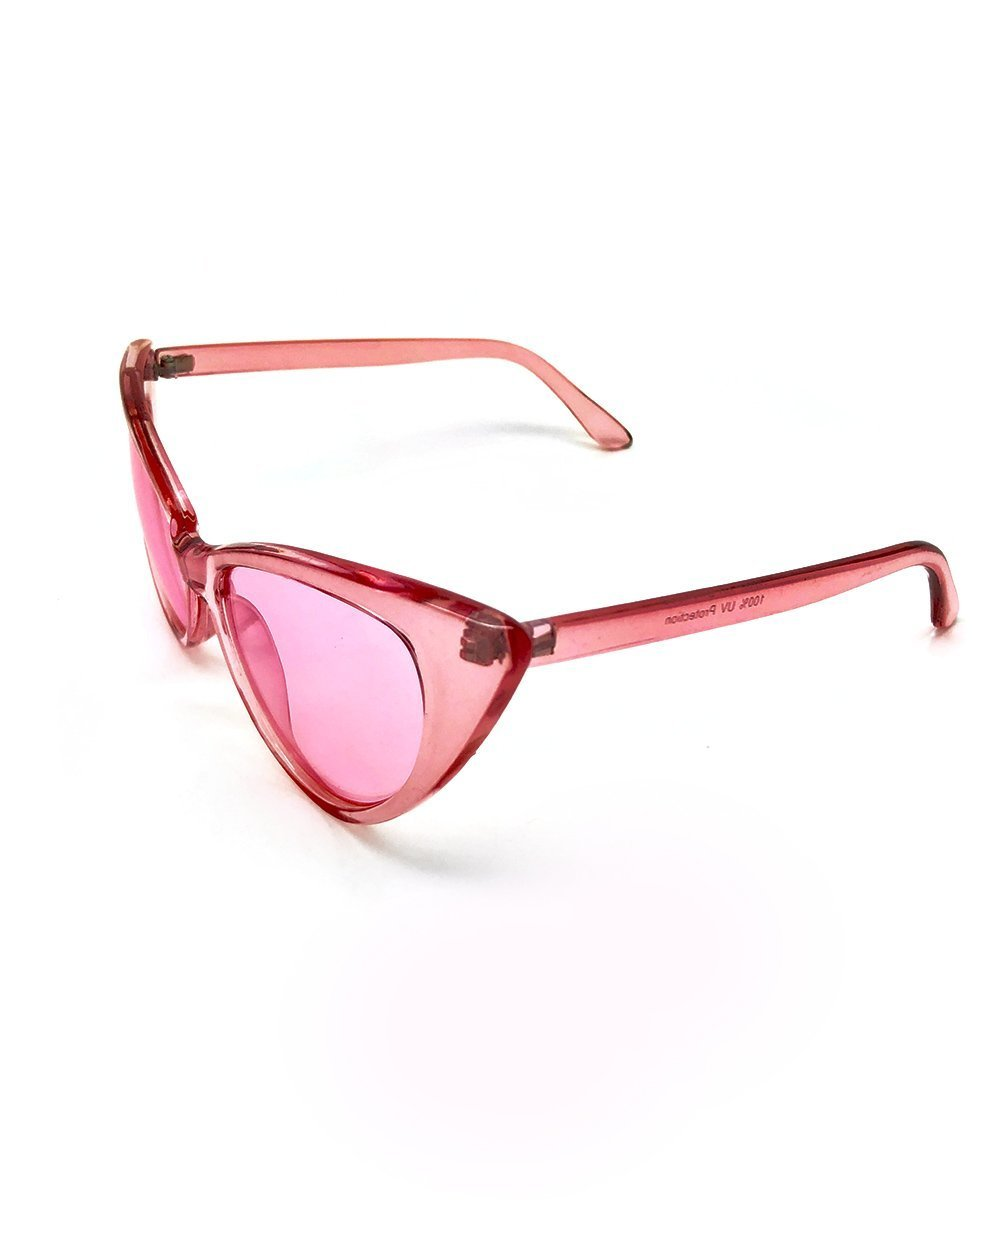 Clear Cat Eye Sunglasses-Pink-Side